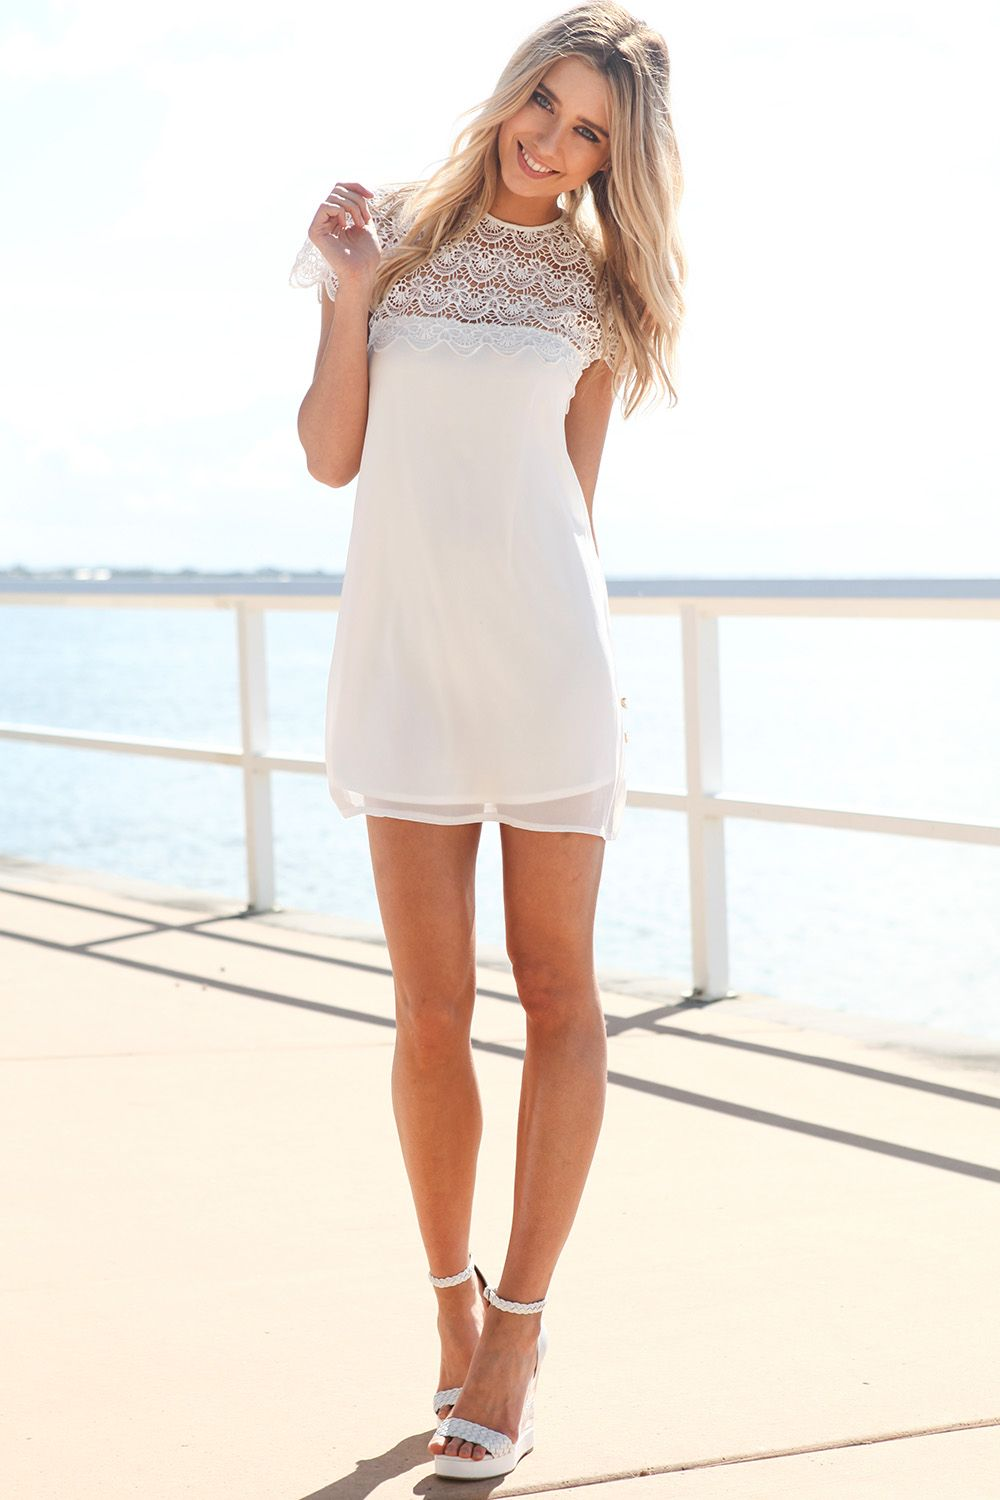 White Cocktail Dress - White Short Sleeve Dress with | UsTrendy ...